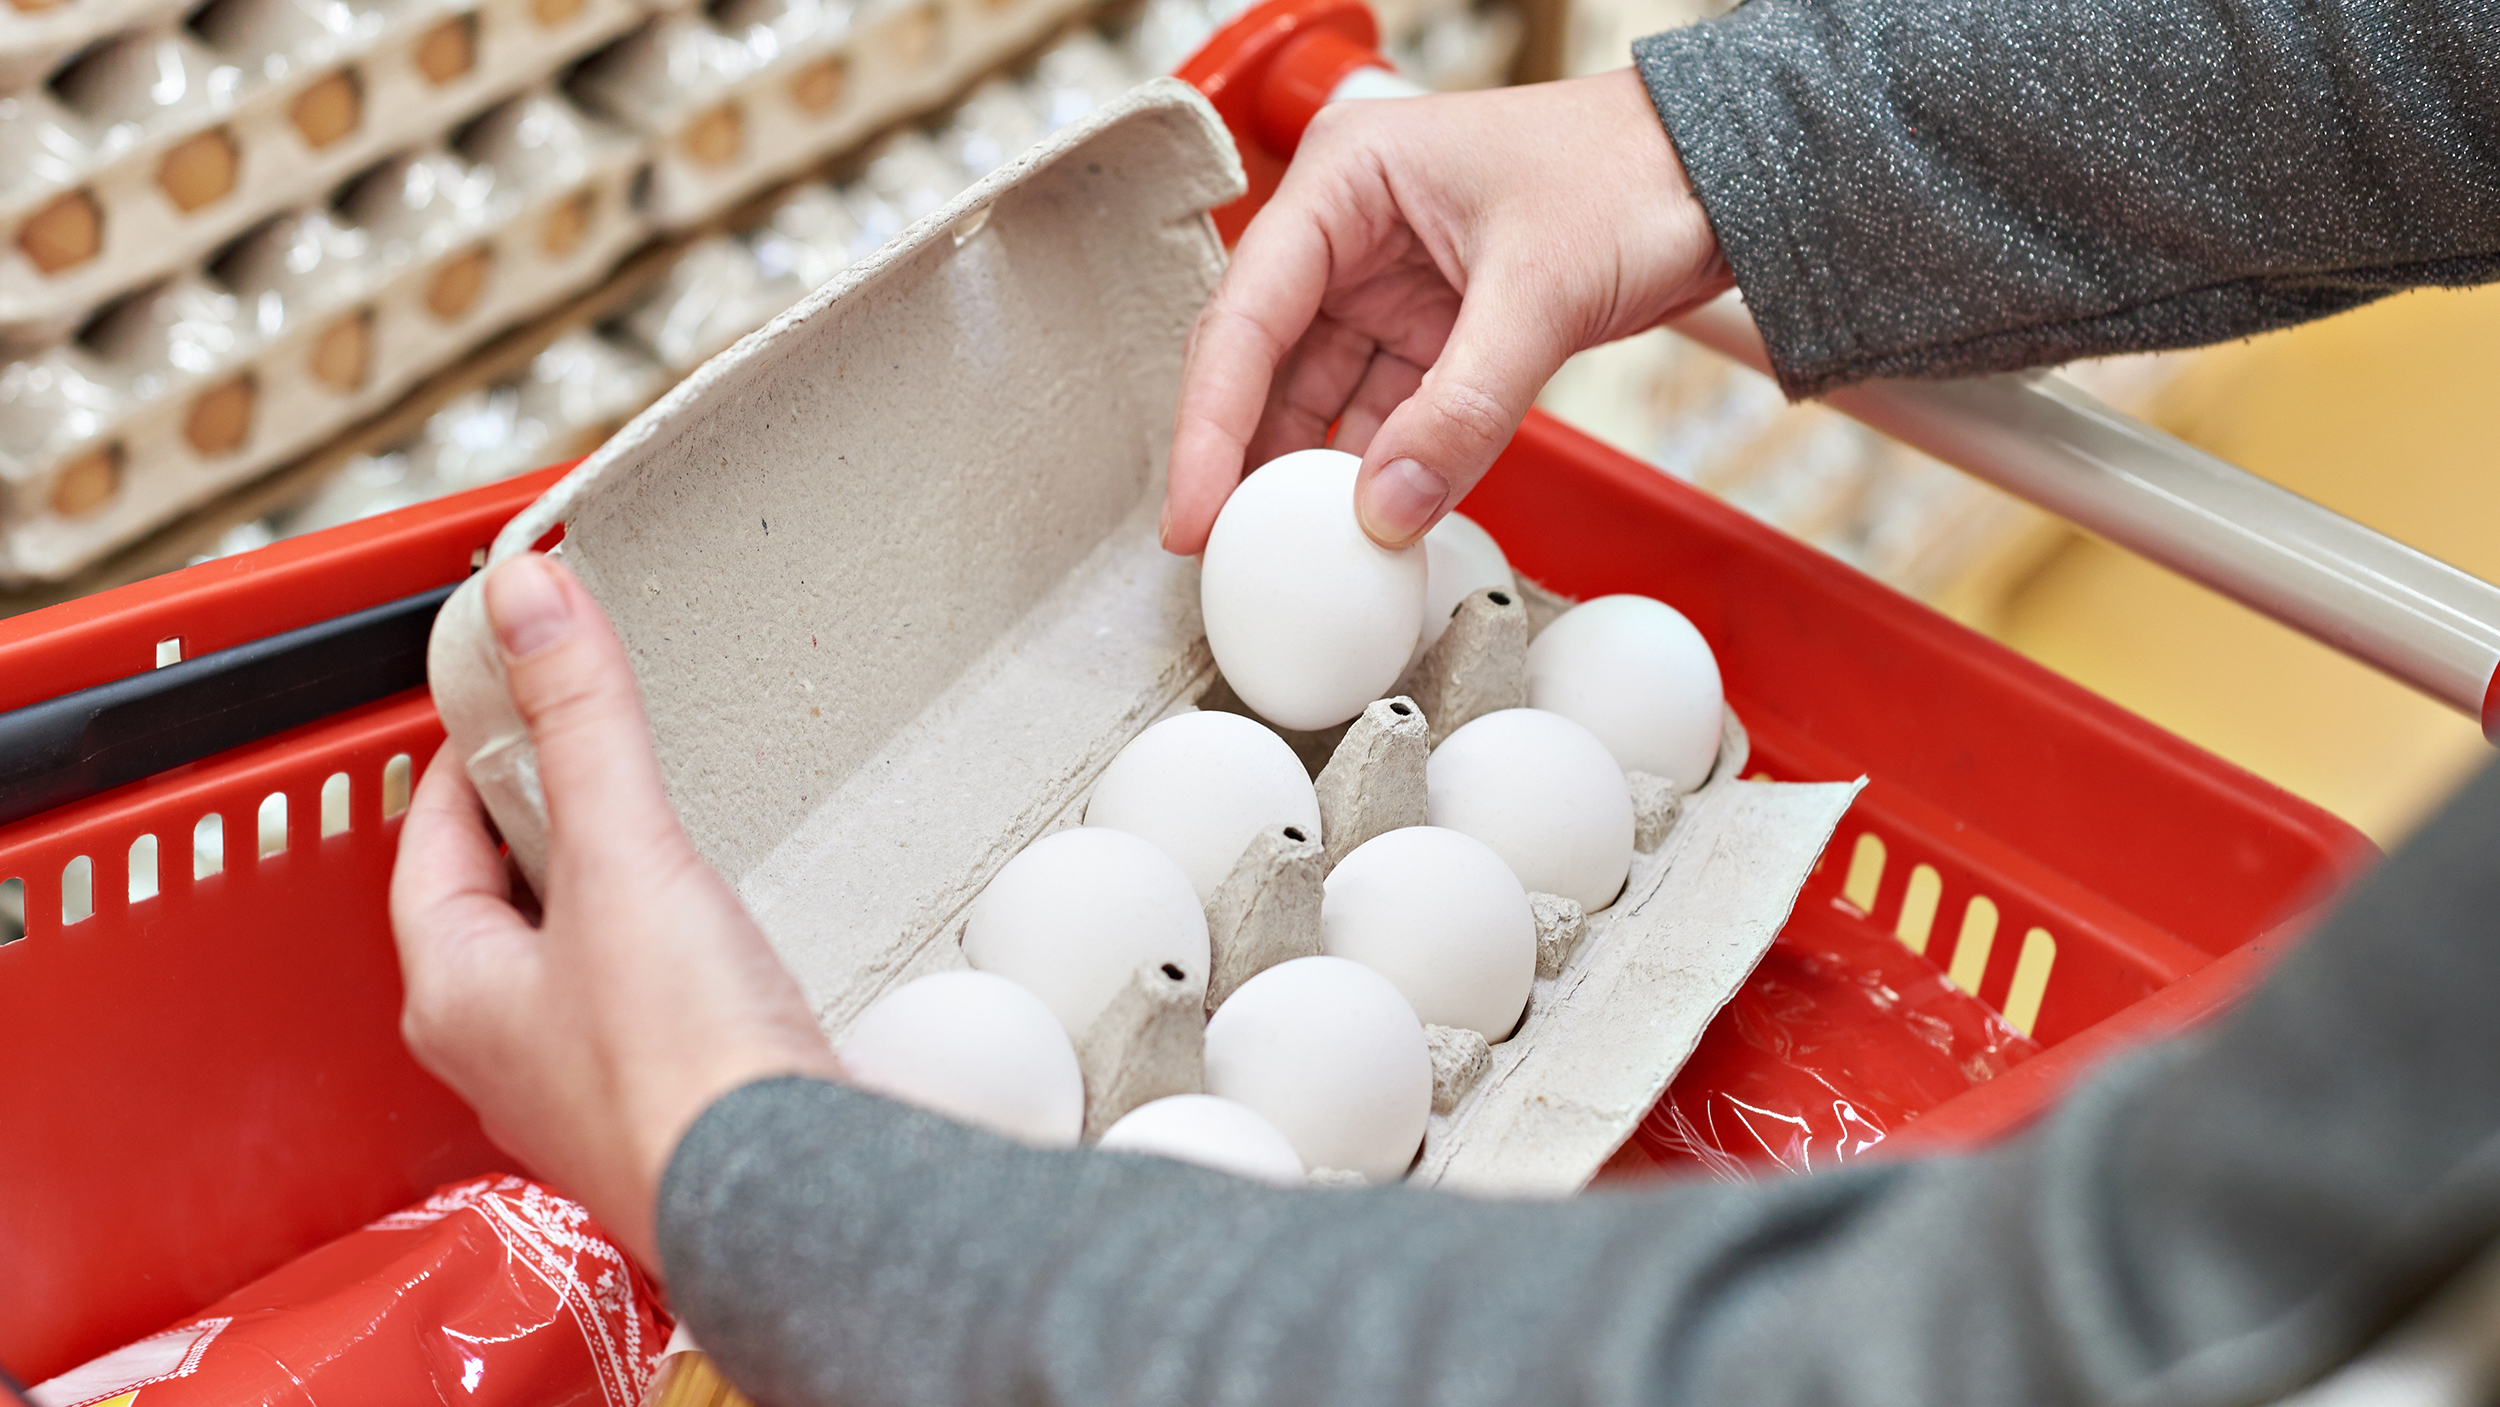 How To Buy The Safest Eggs After Egg Recall